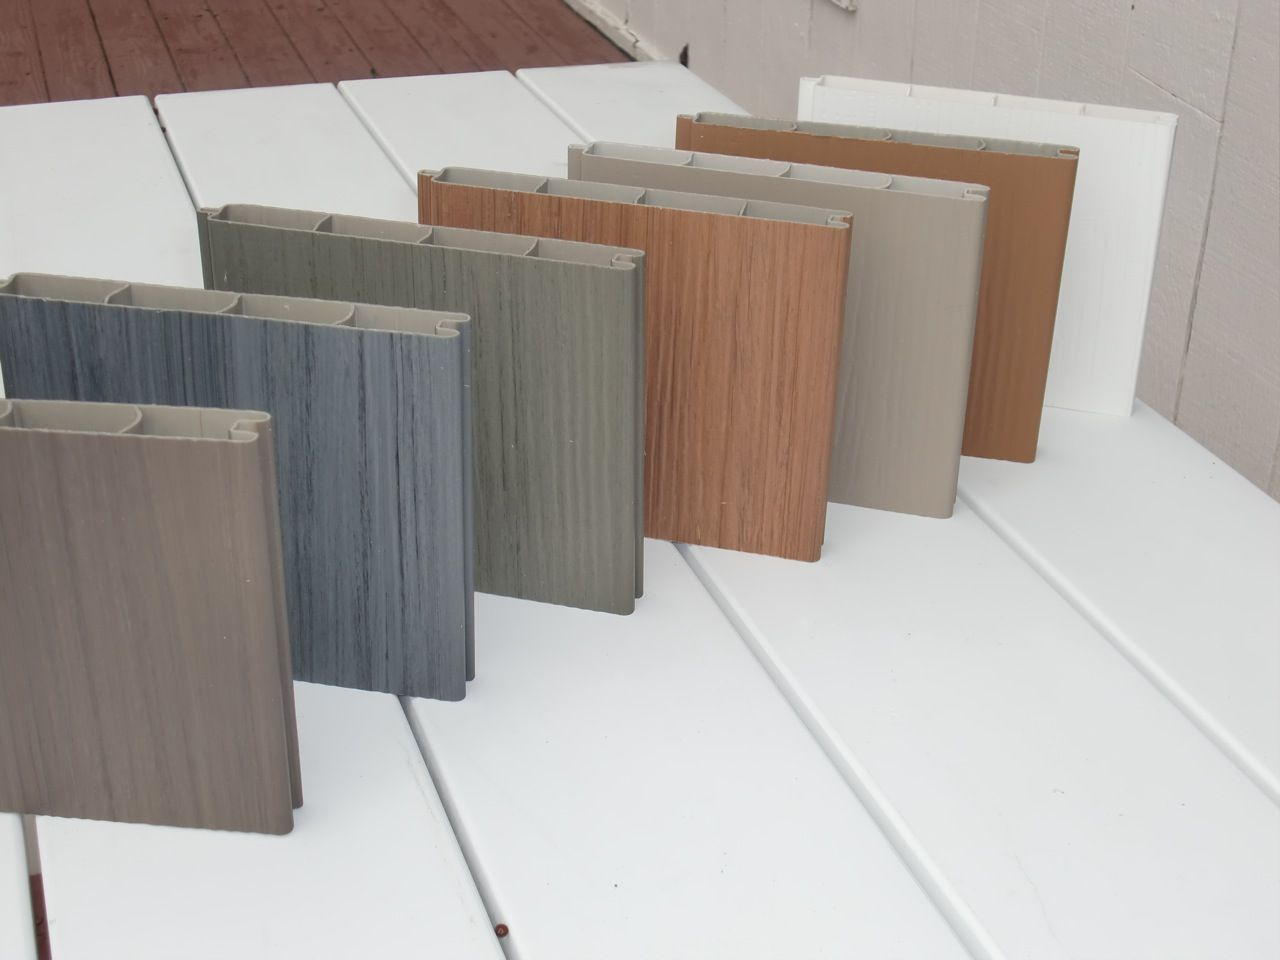 Vinyl fence samples with wood grain look multiple colors make it vinyl fence samples with wood grain look multiple colors make it look very realistic yet baanklon Image collections